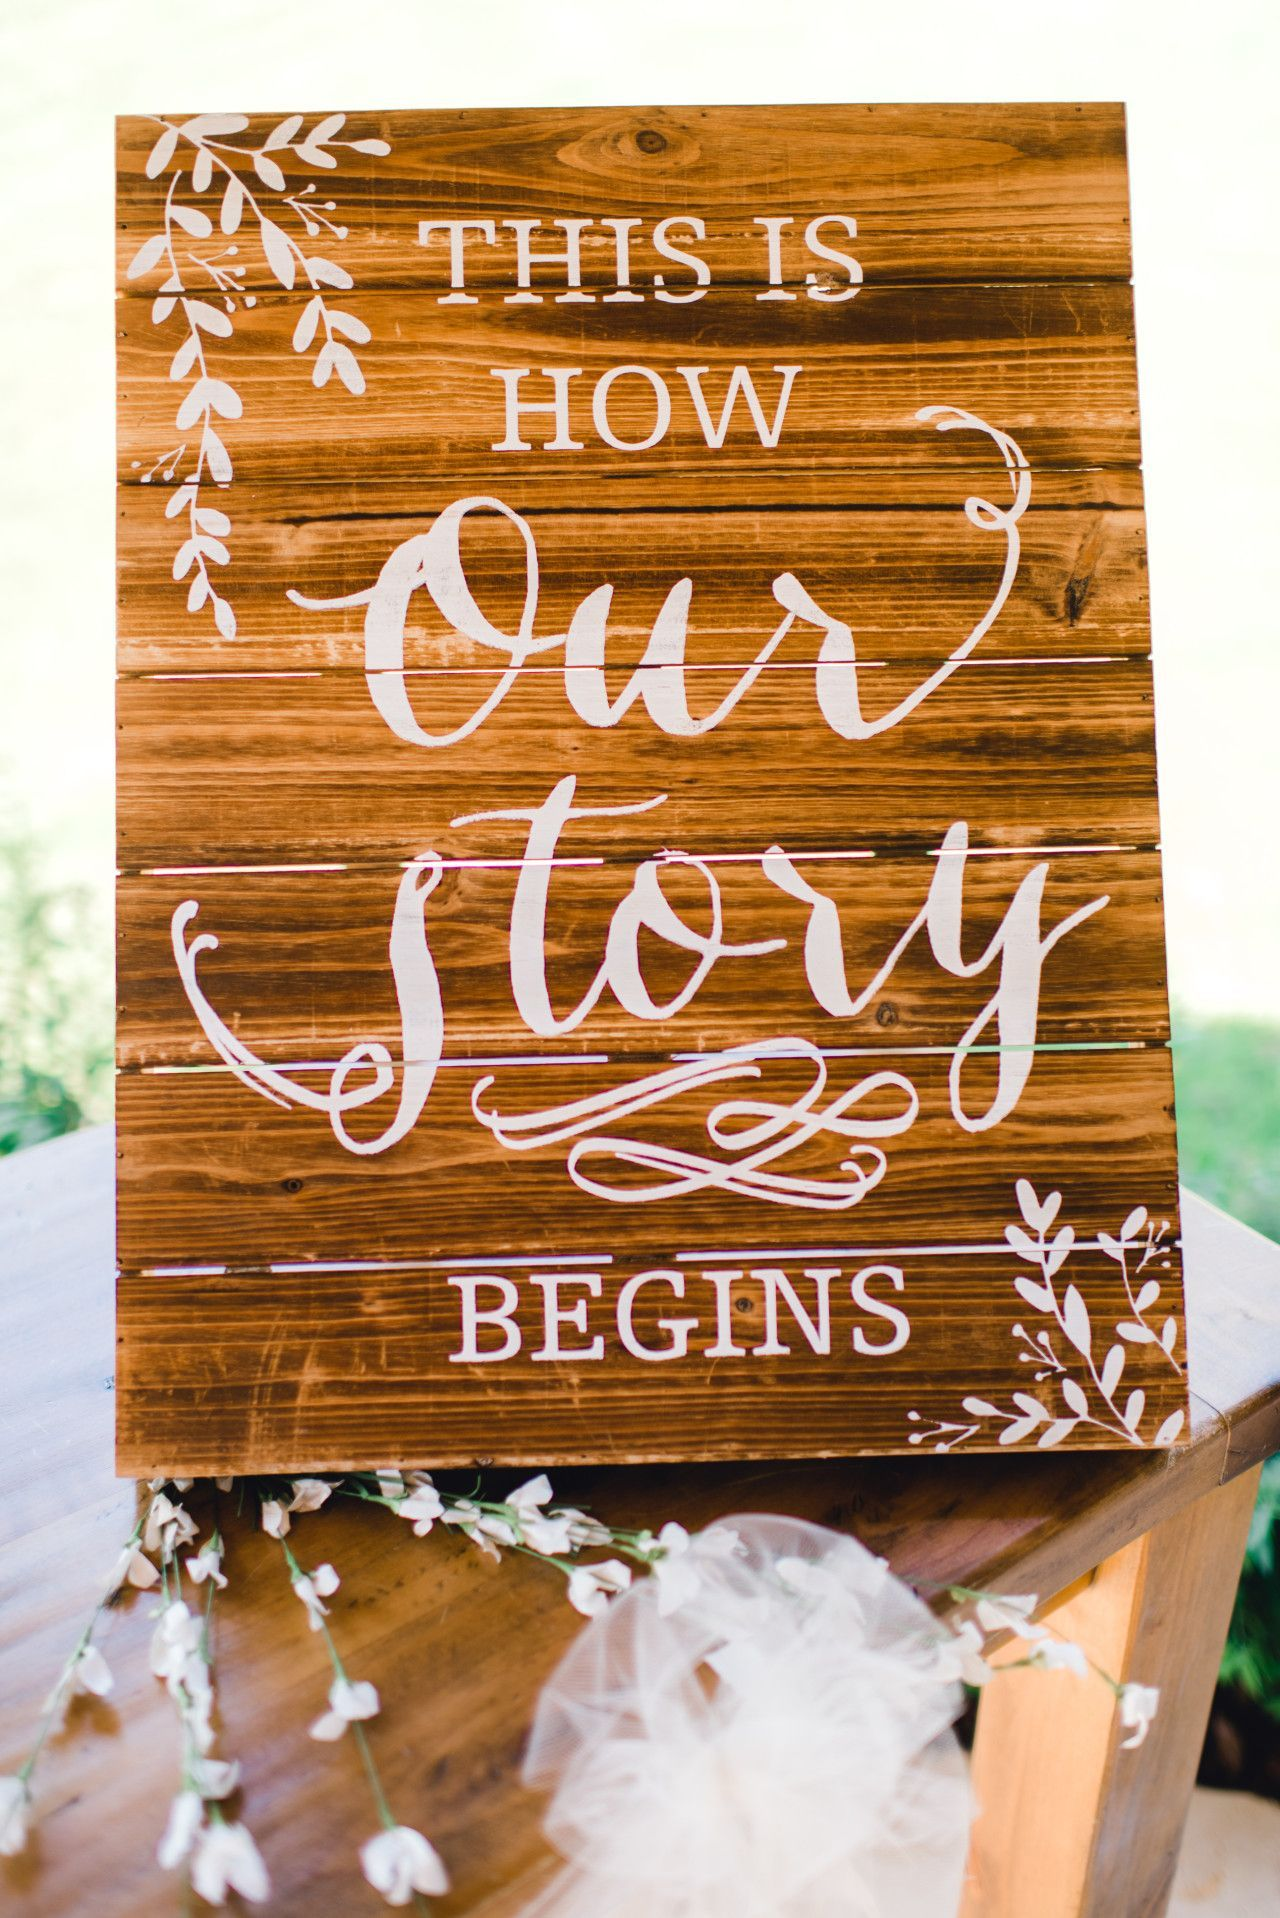 Elegant wooden wedding signs this is how our story begins cute elegant wooden wedding signs this is how our story begins cute junglespirit Image collections